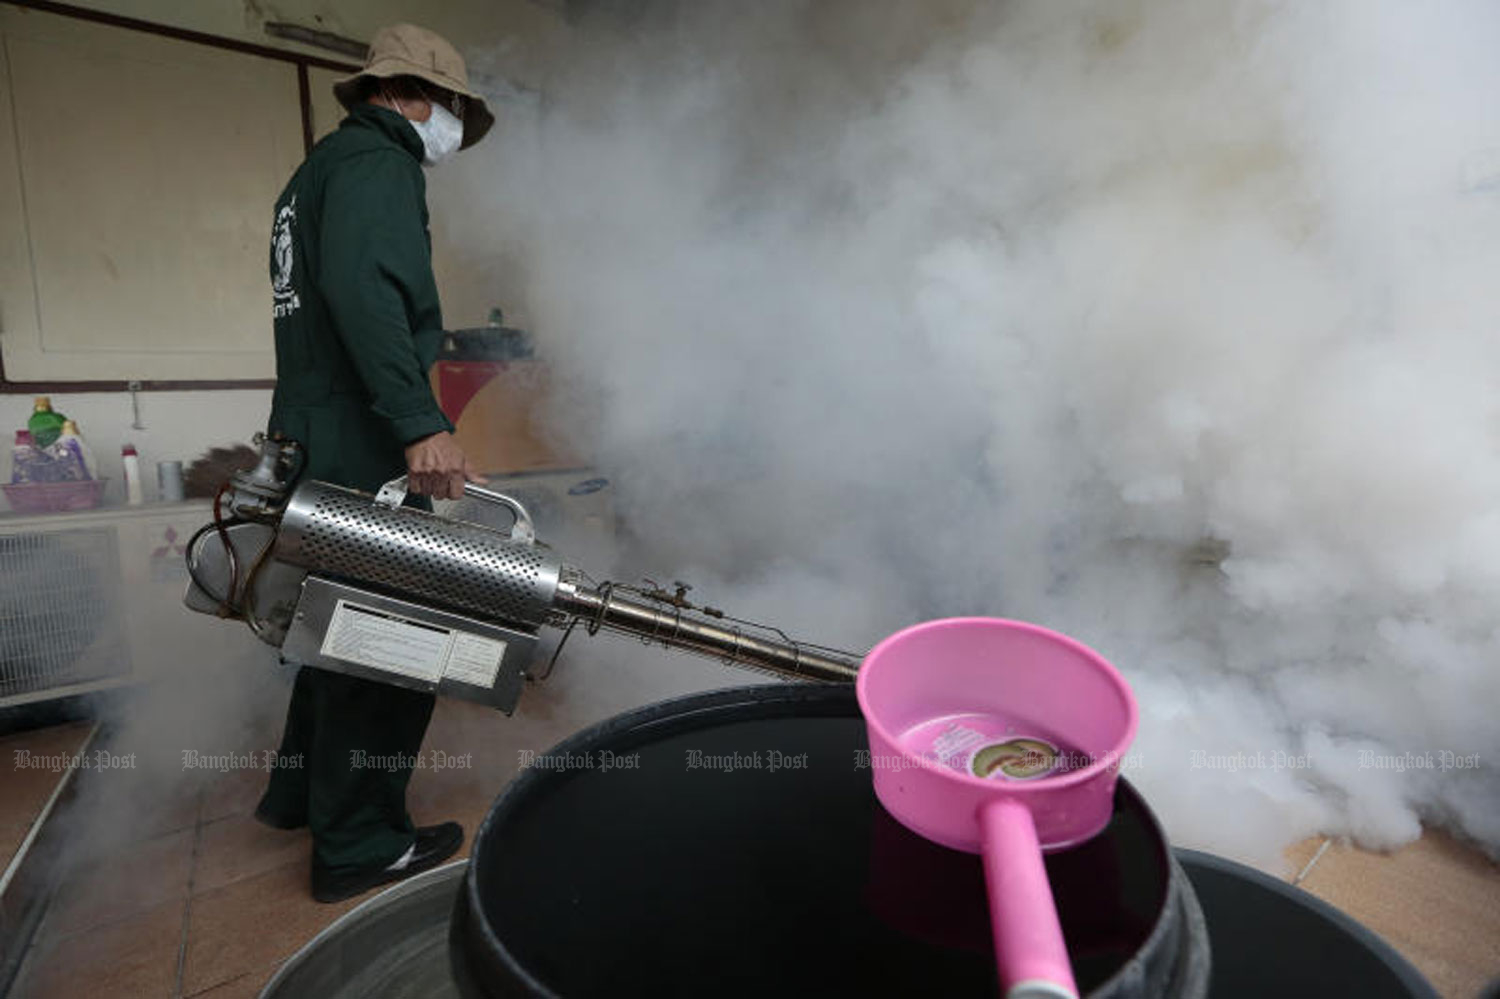 More than 600 deaths push Philippines to declare 'national dengue epidemic'